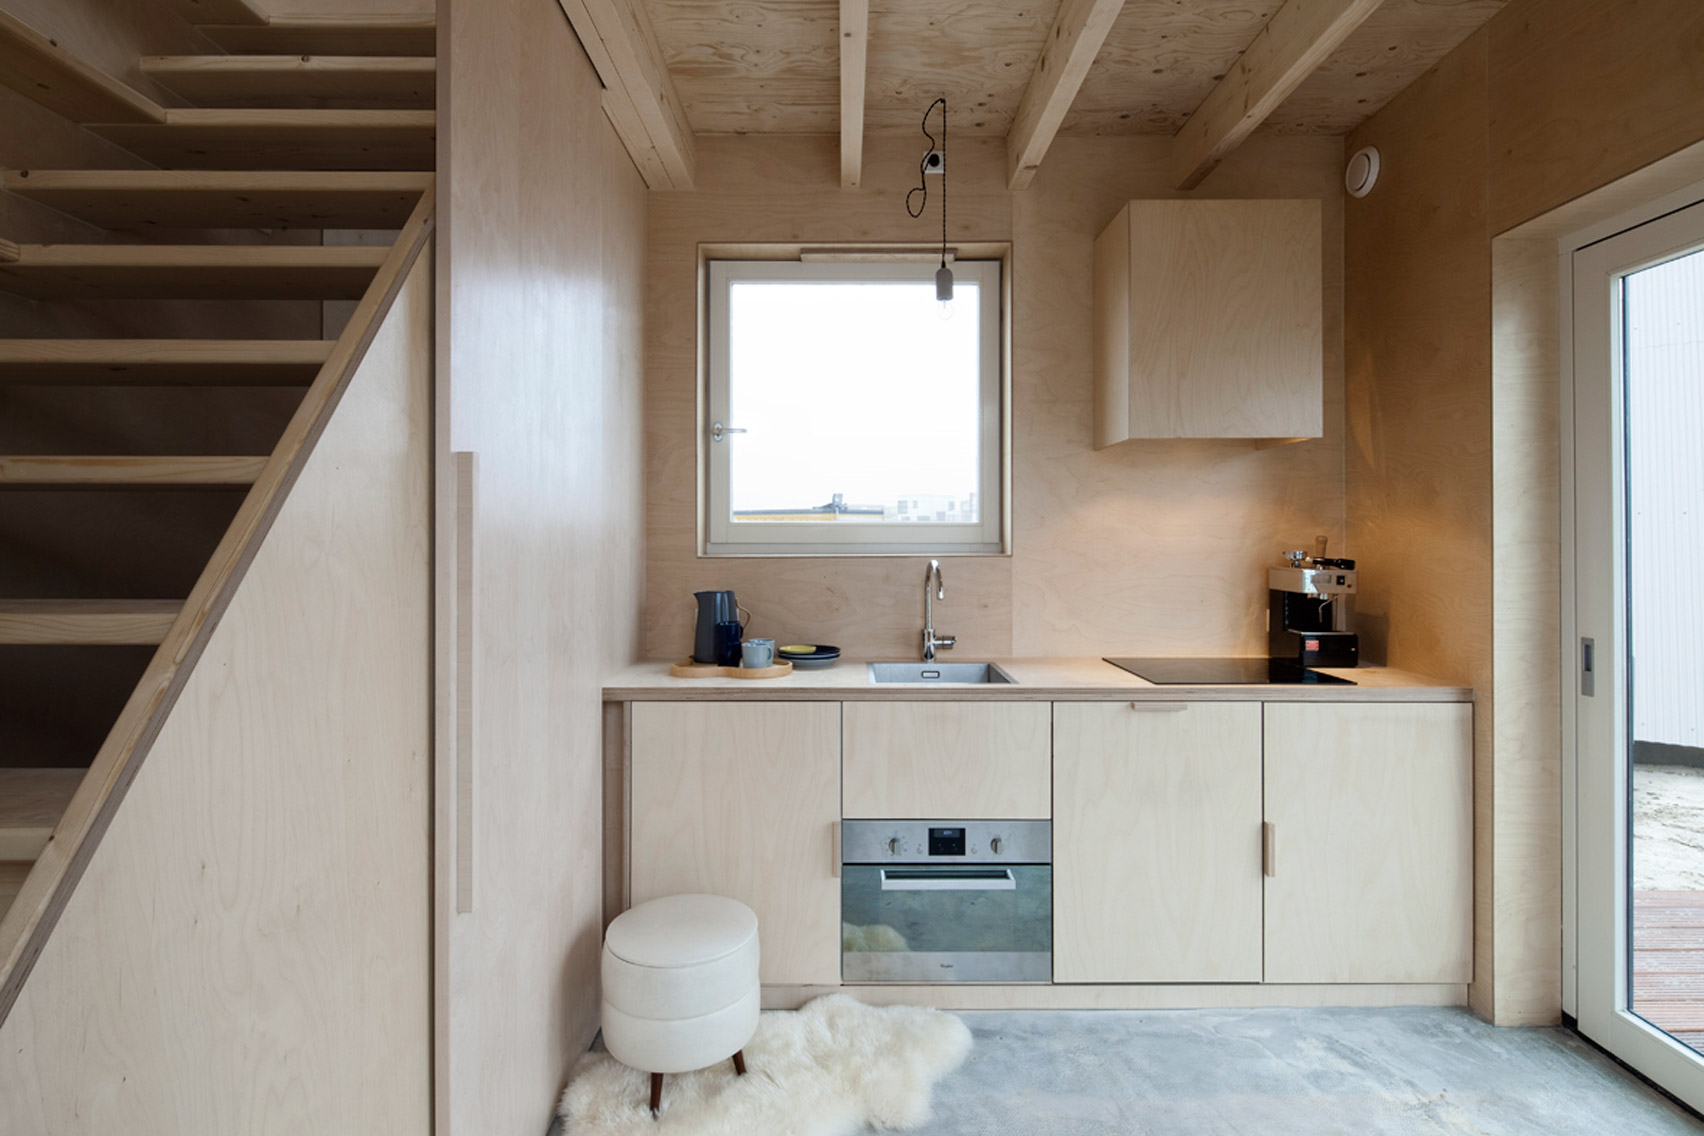 Slim Fit by Ana Rocha Architecture